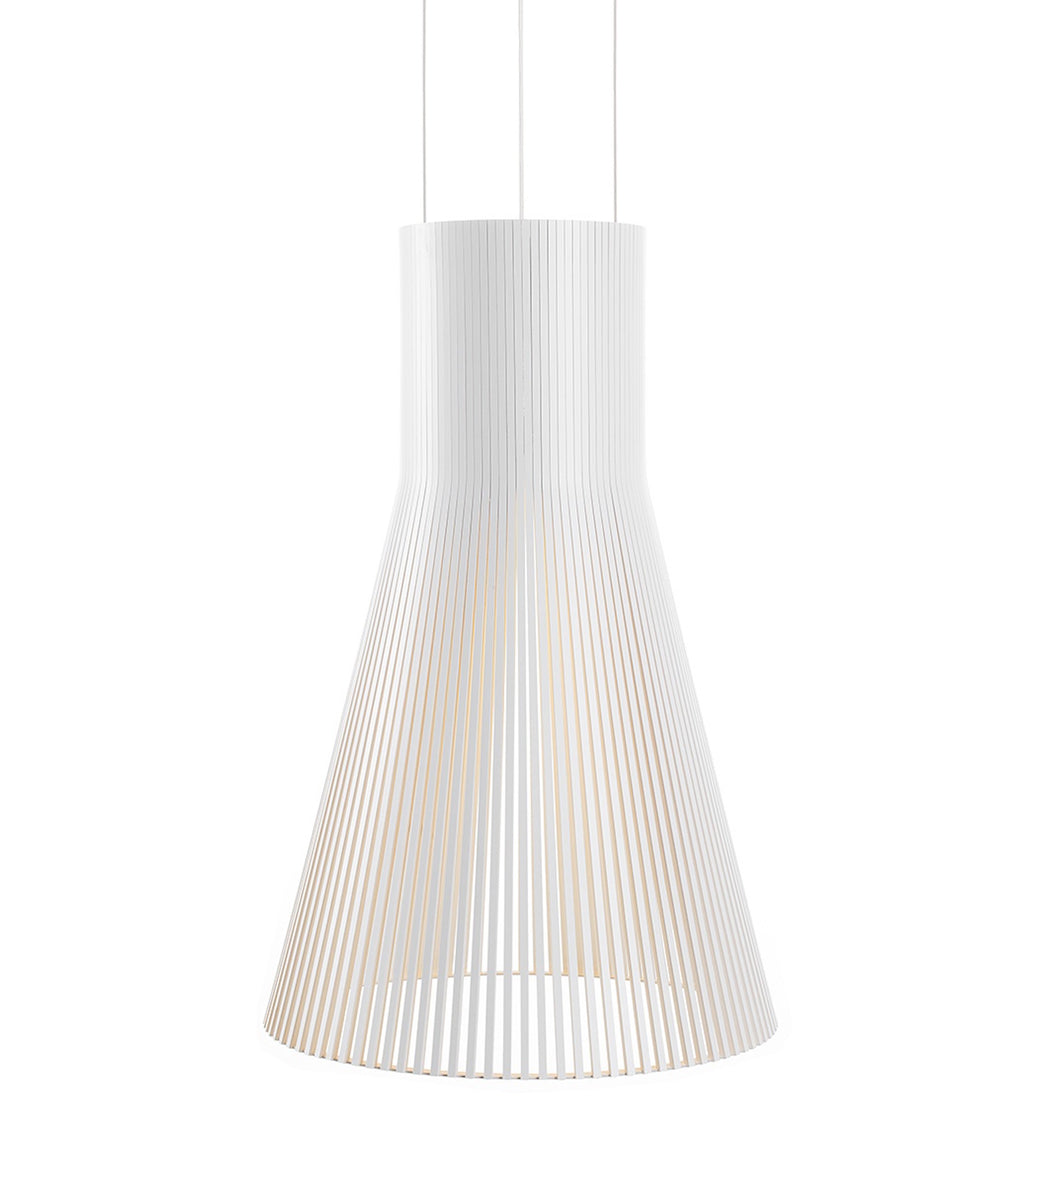 Magnum 4202 White Secto Design Large Scandinavian Wood Pendant Organic ceiling lamp